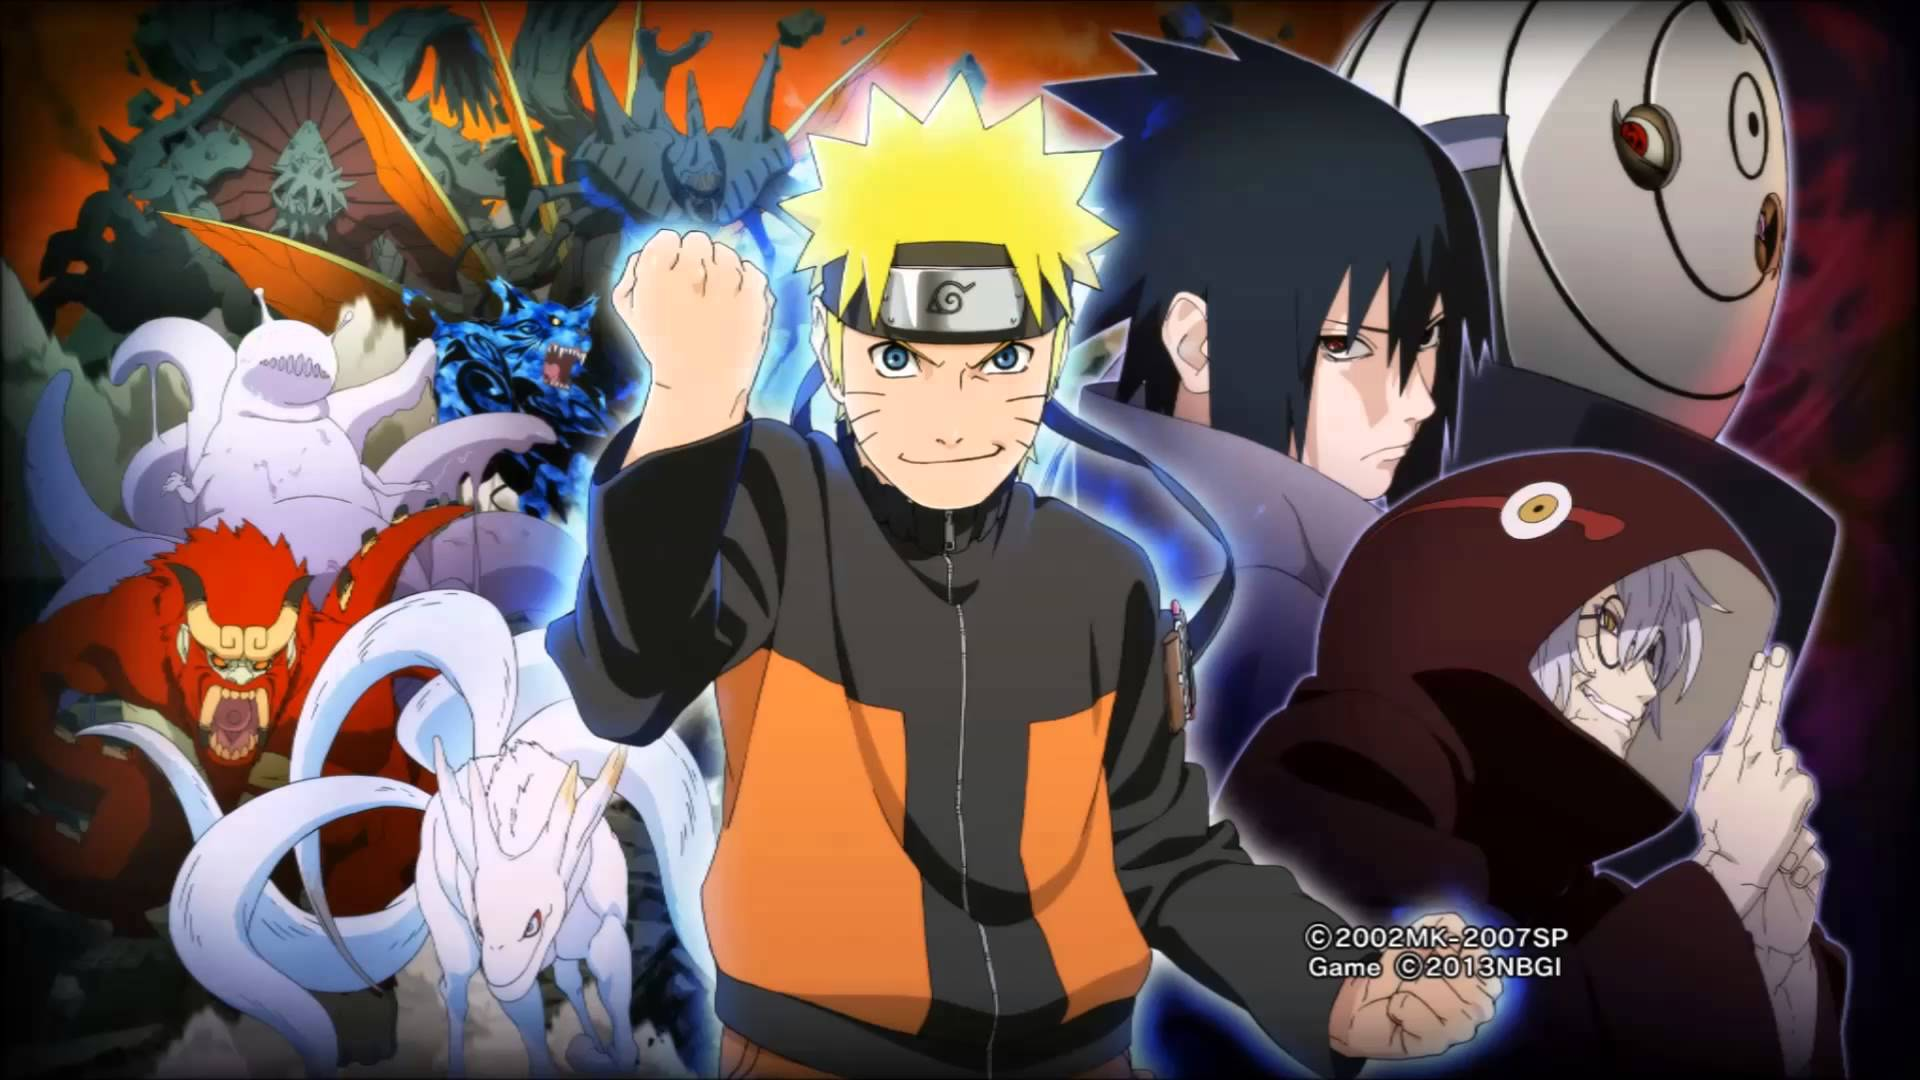 Naruto Shippuden wallpapers HD  PixelsTalk Naruto HD Wallpapers and Backgrounds 1920x1080